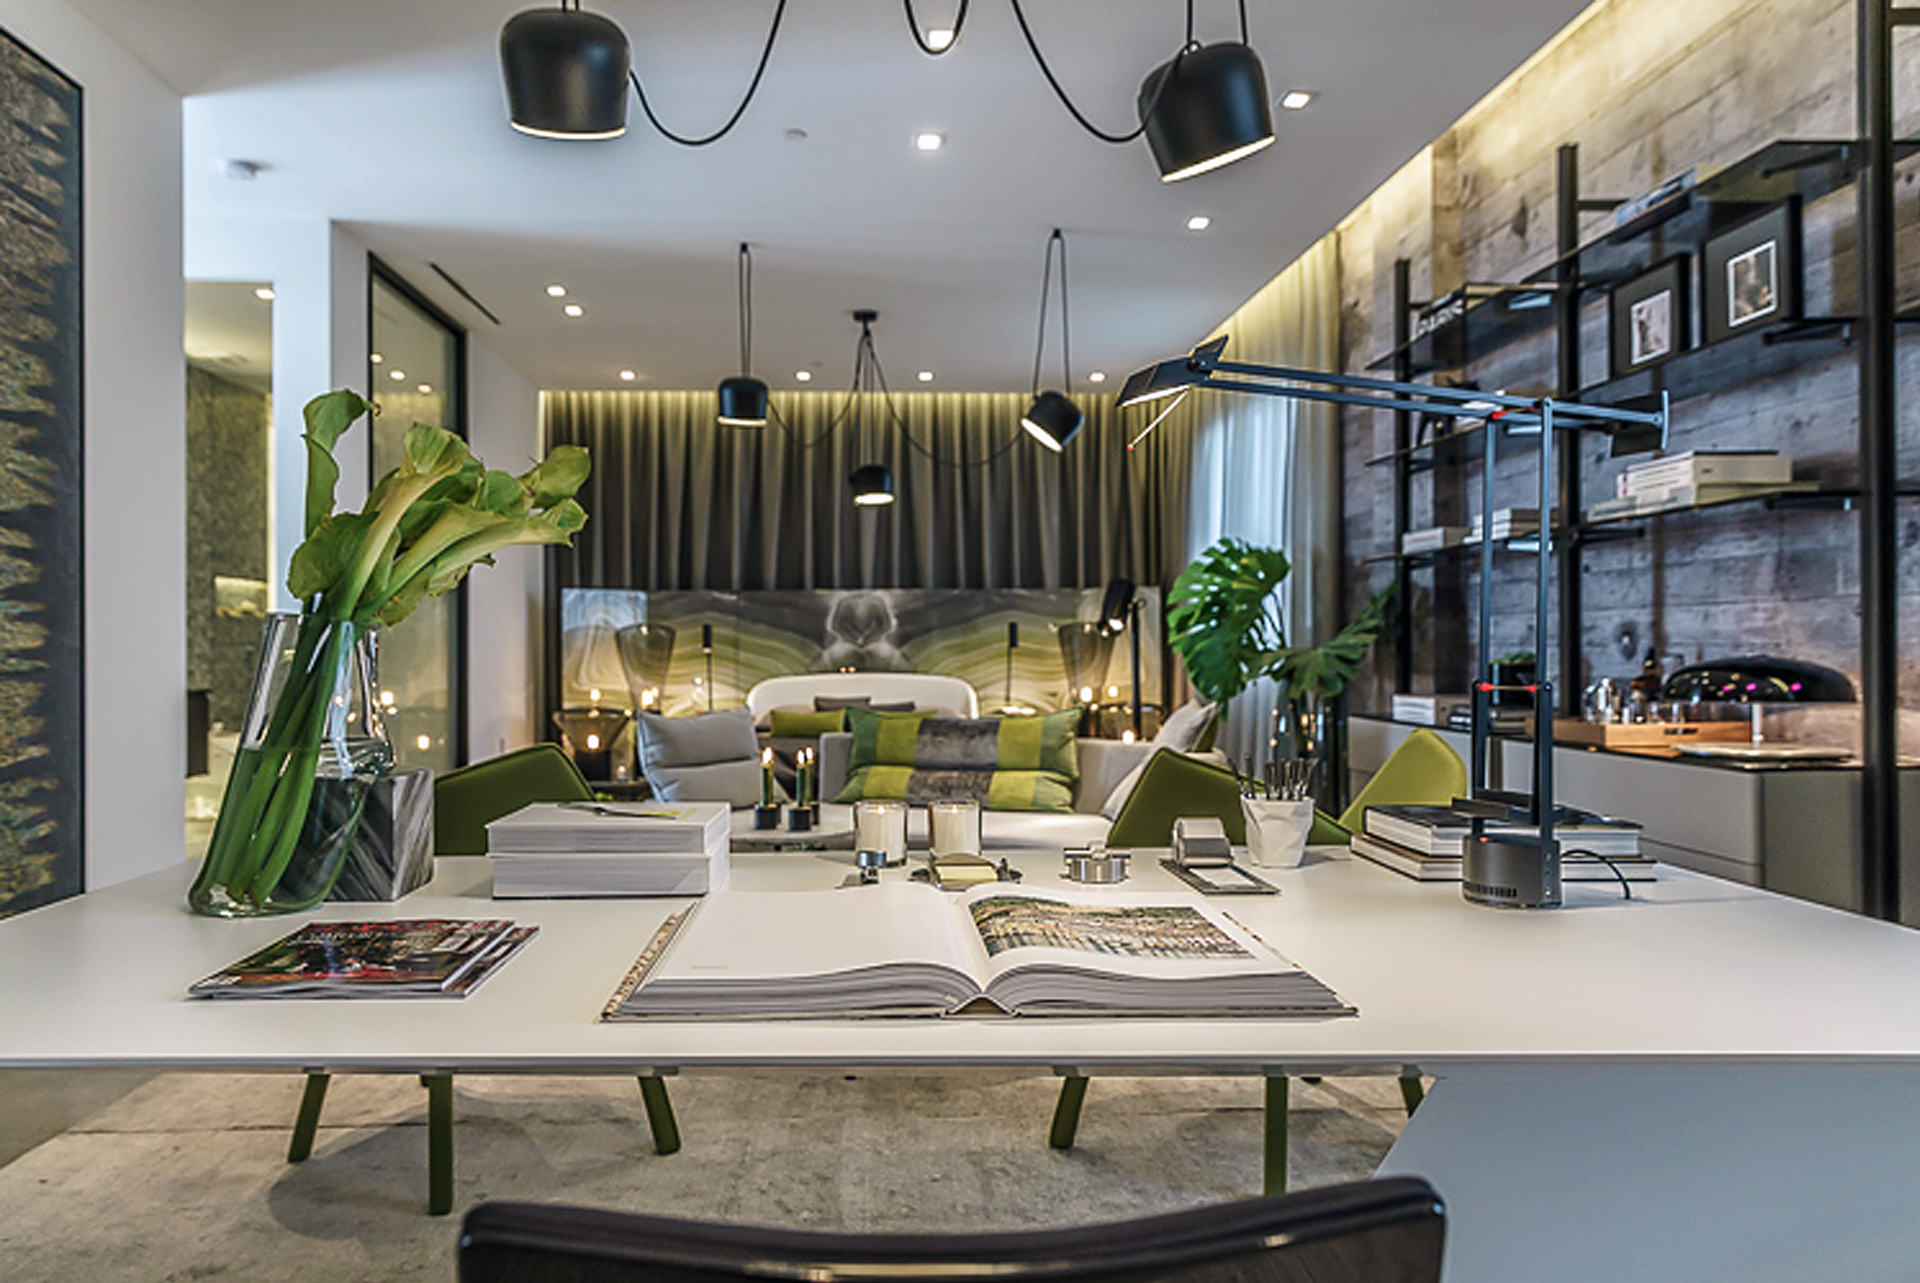 By gregory robin alex turco pepe cavalieri and renato freitas lighting by lumens carpet the rug company fabric cowan and tout drapery by espinosa